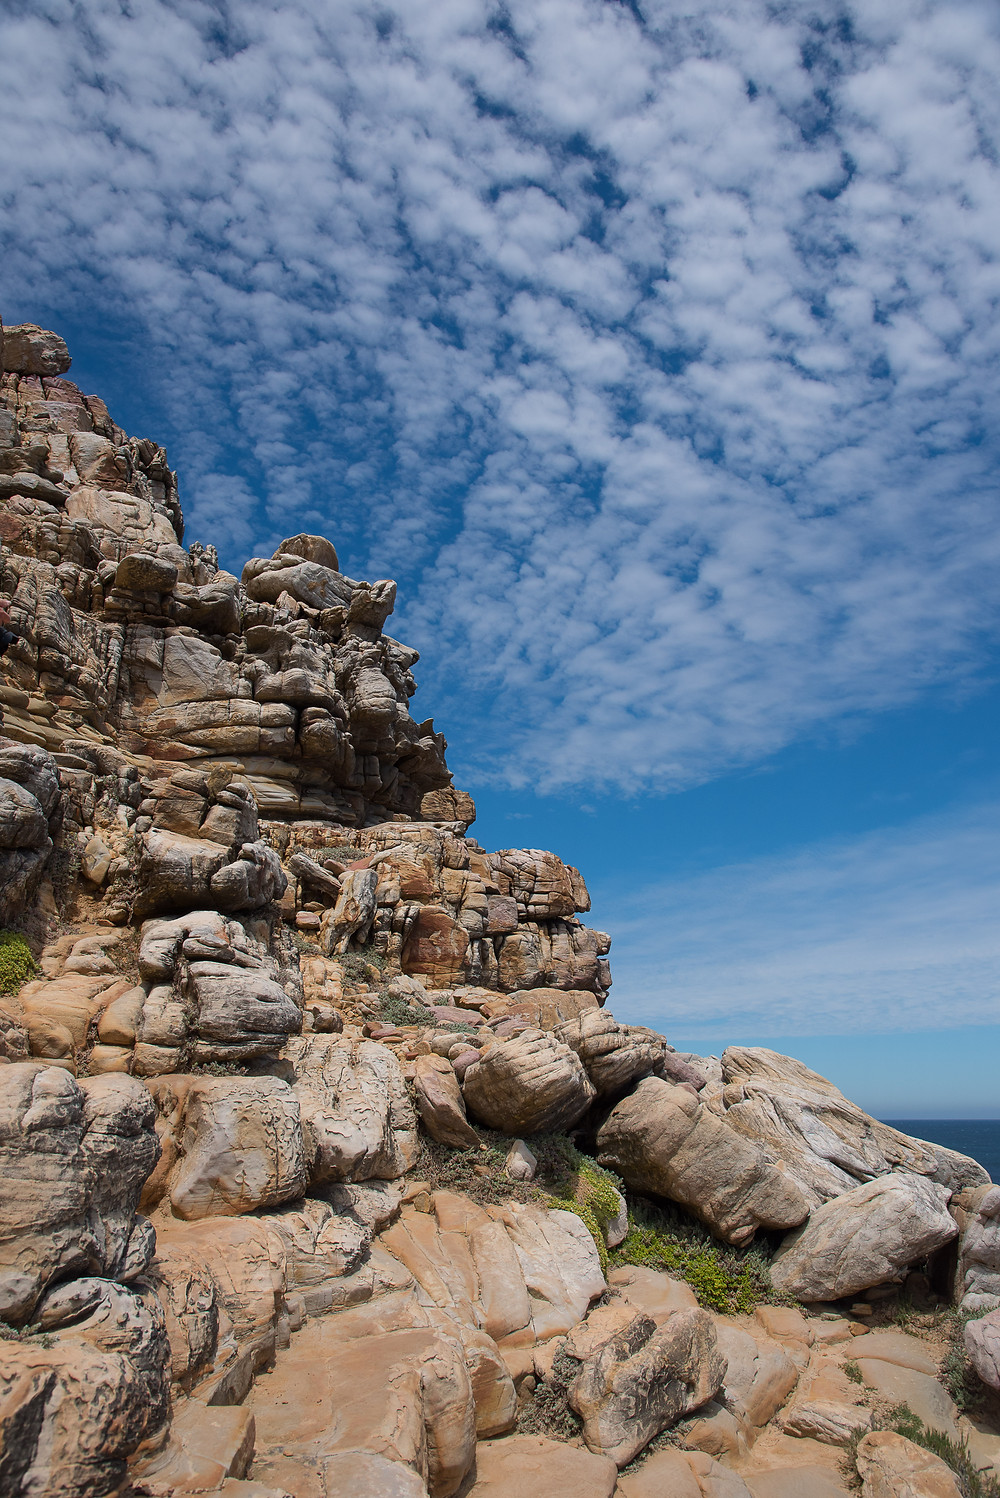 Mountain breathing clouds, Cape of Good Hope, South Africa